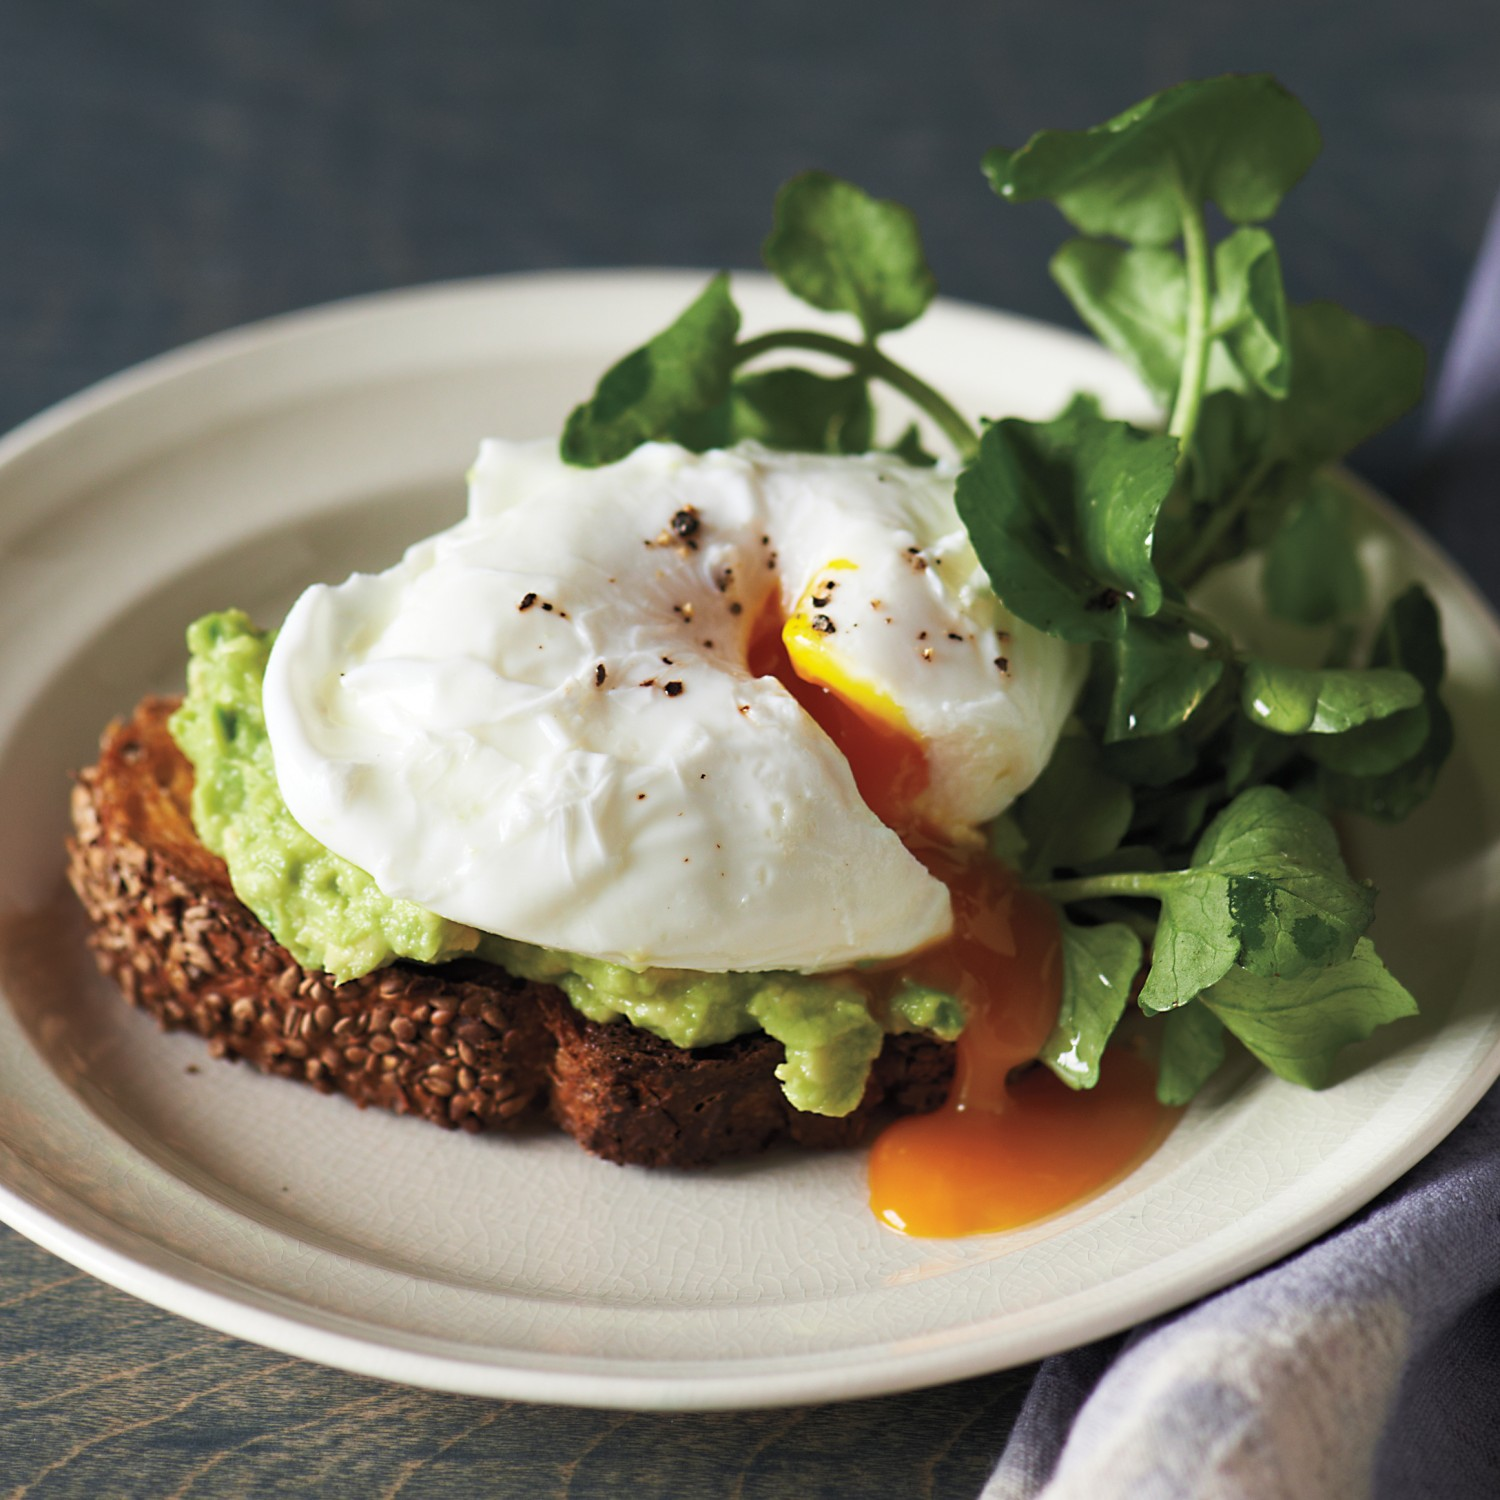 sesame-toasts-poached-egg-avocado-md109548_sq